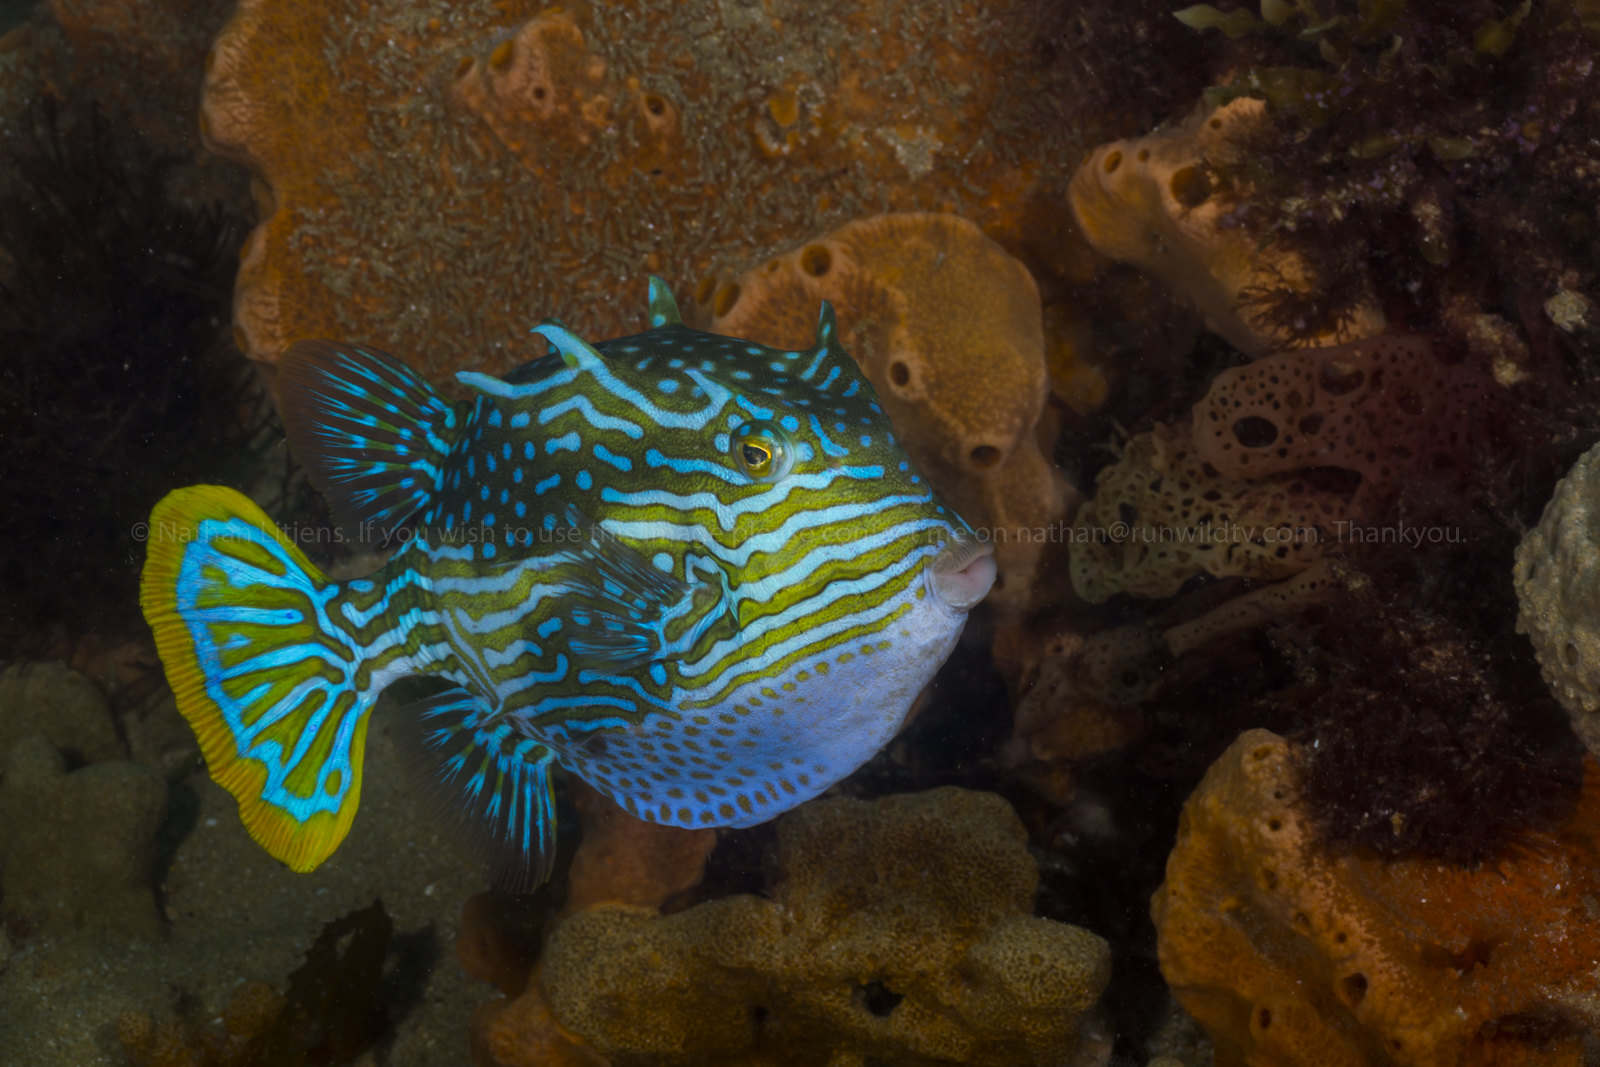 Male Shaw's cowfish (Aracana aurita)